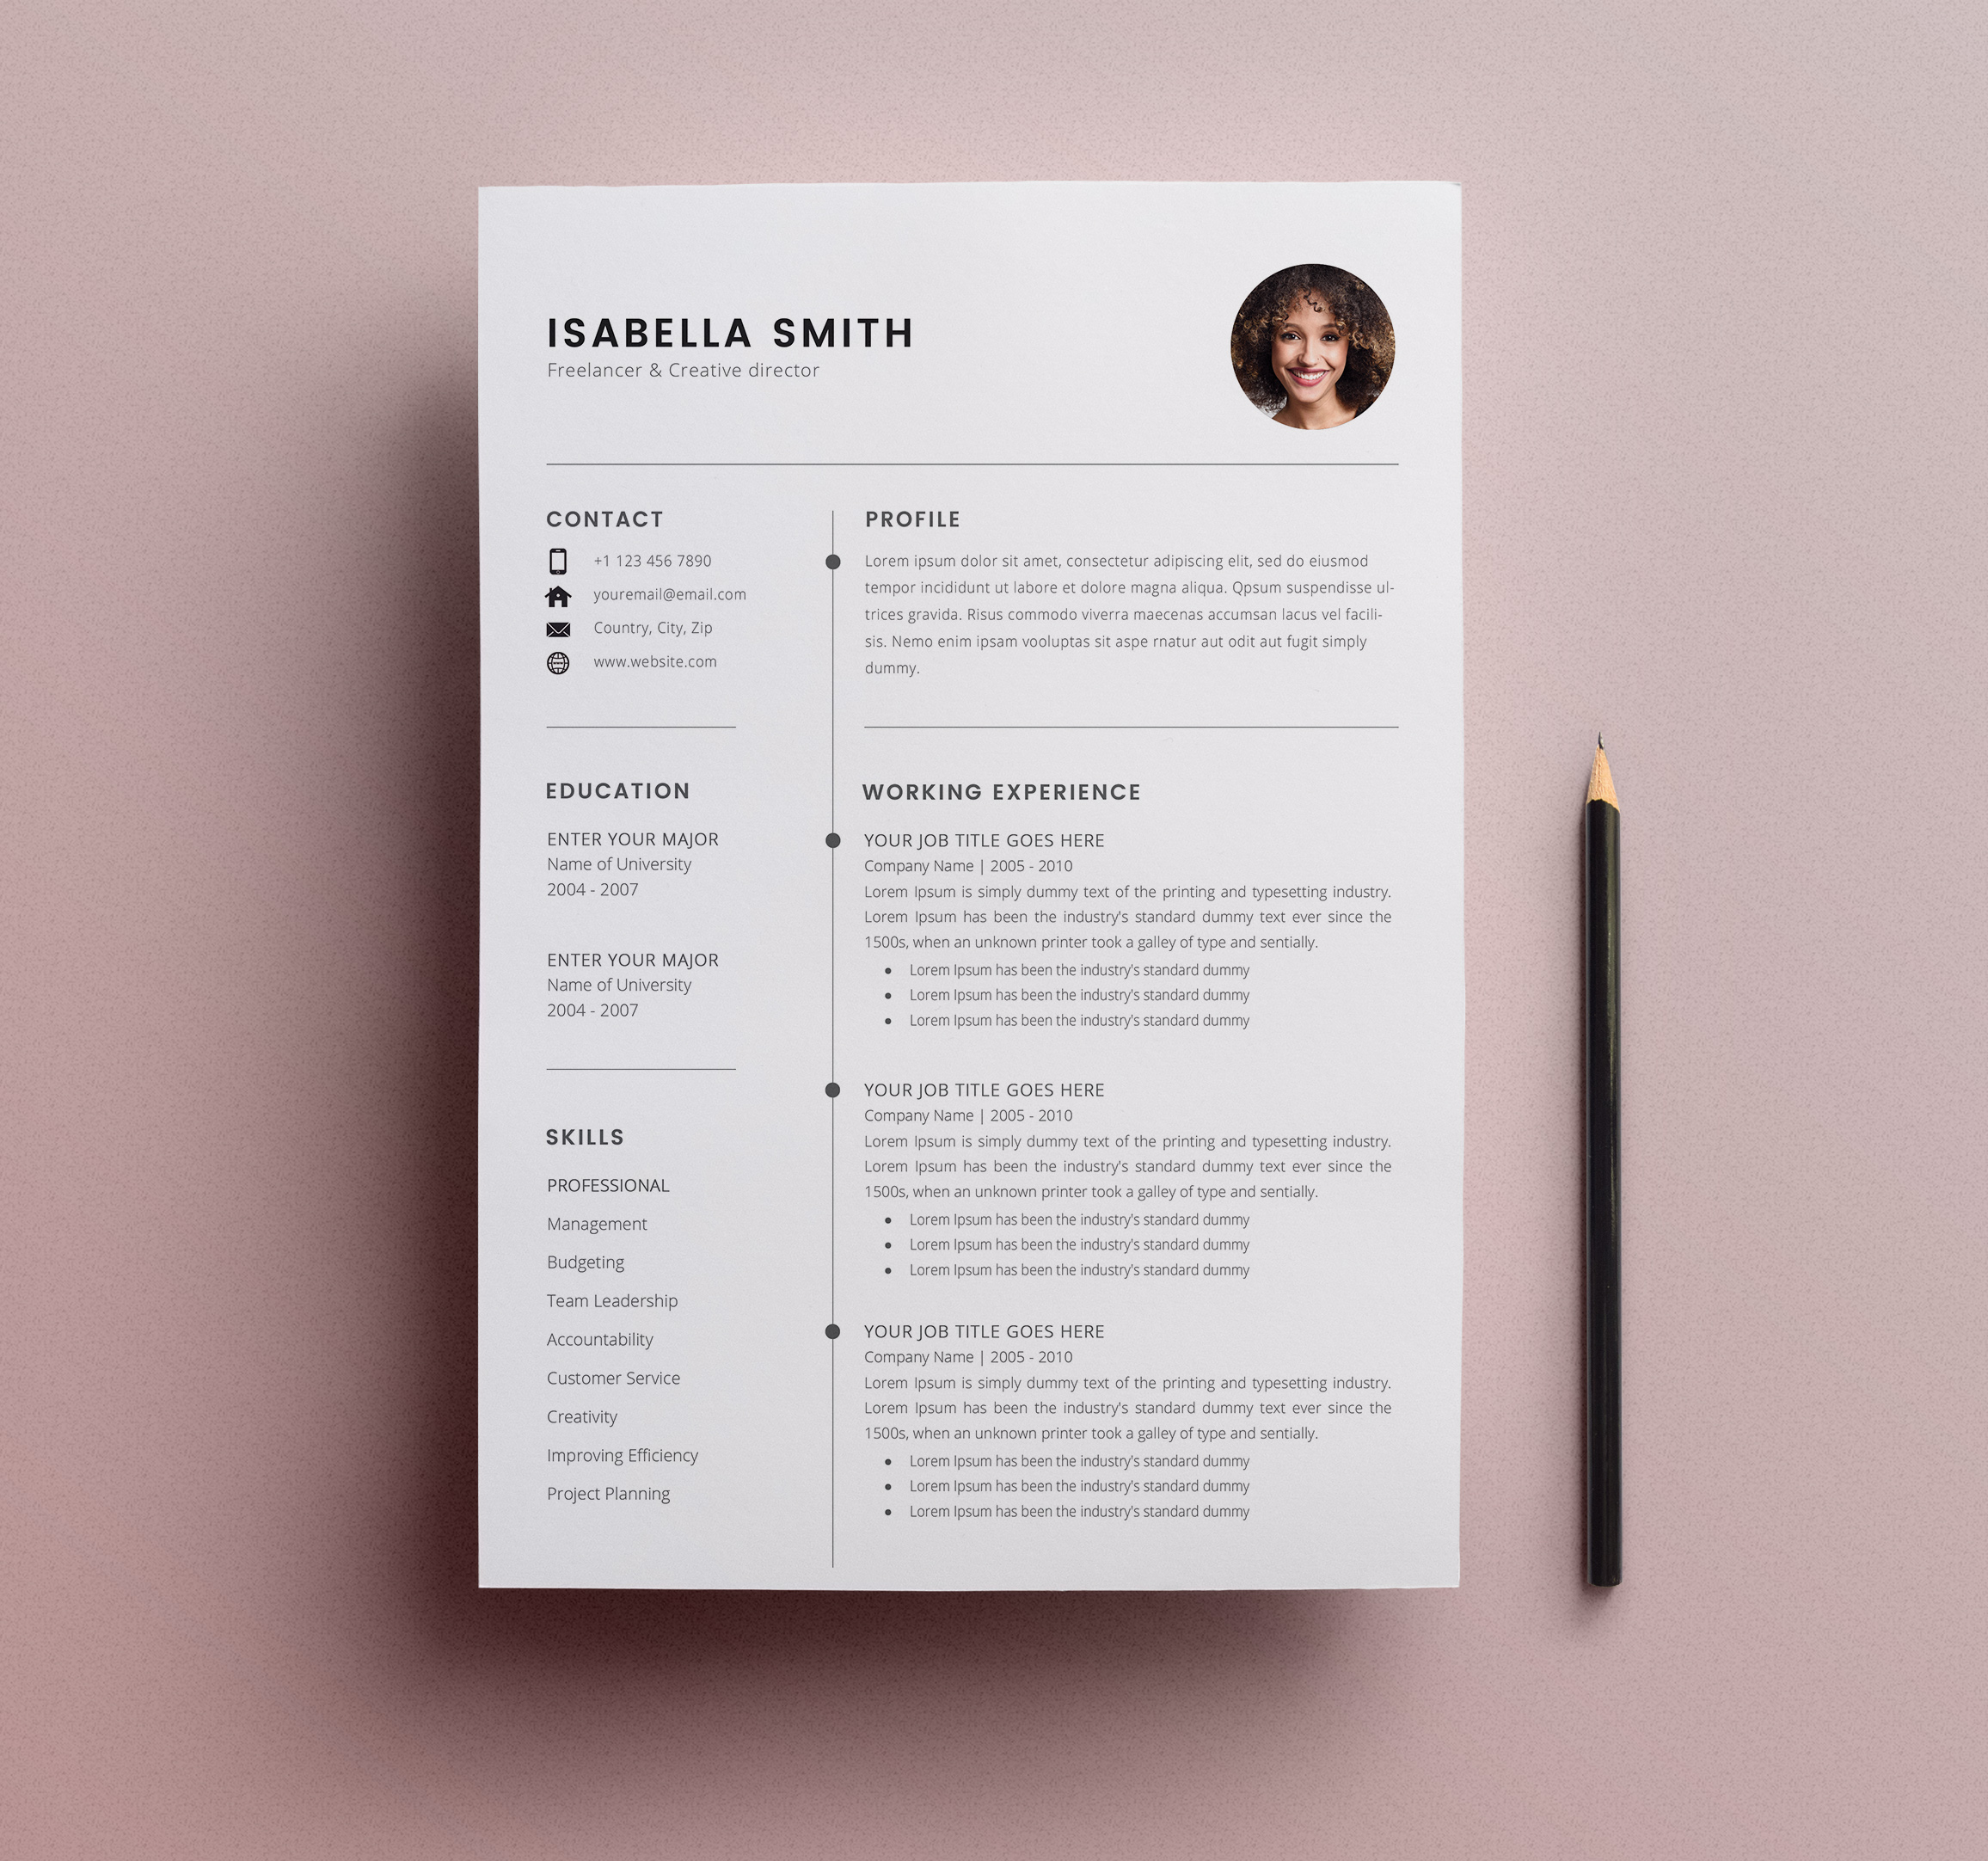 free resume template cv freebies graphic design junction templates view1 best Resume Free Resume Templates 2020 Download